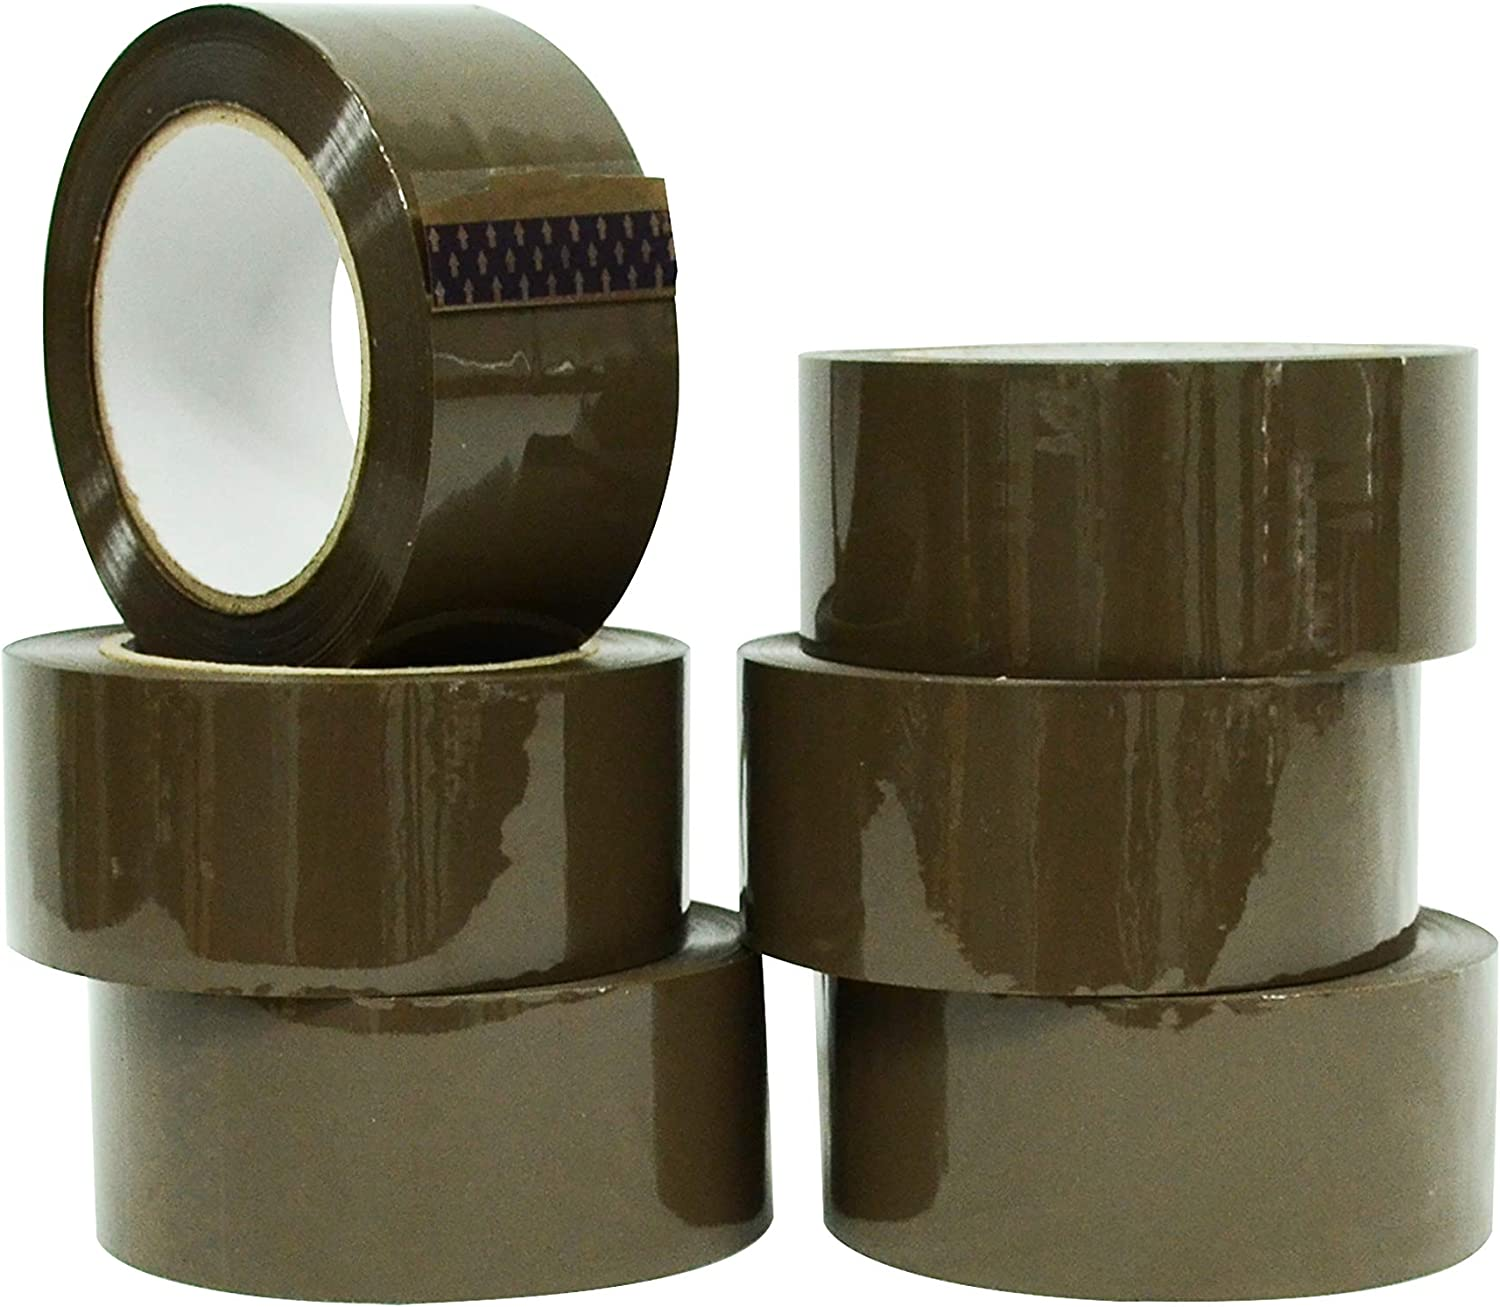 NEW STRONG ADHESIVE 6X ROLLS PACK TAPE 2X FRAGILE 2X CLEAR 2X BROWN PACKAGING